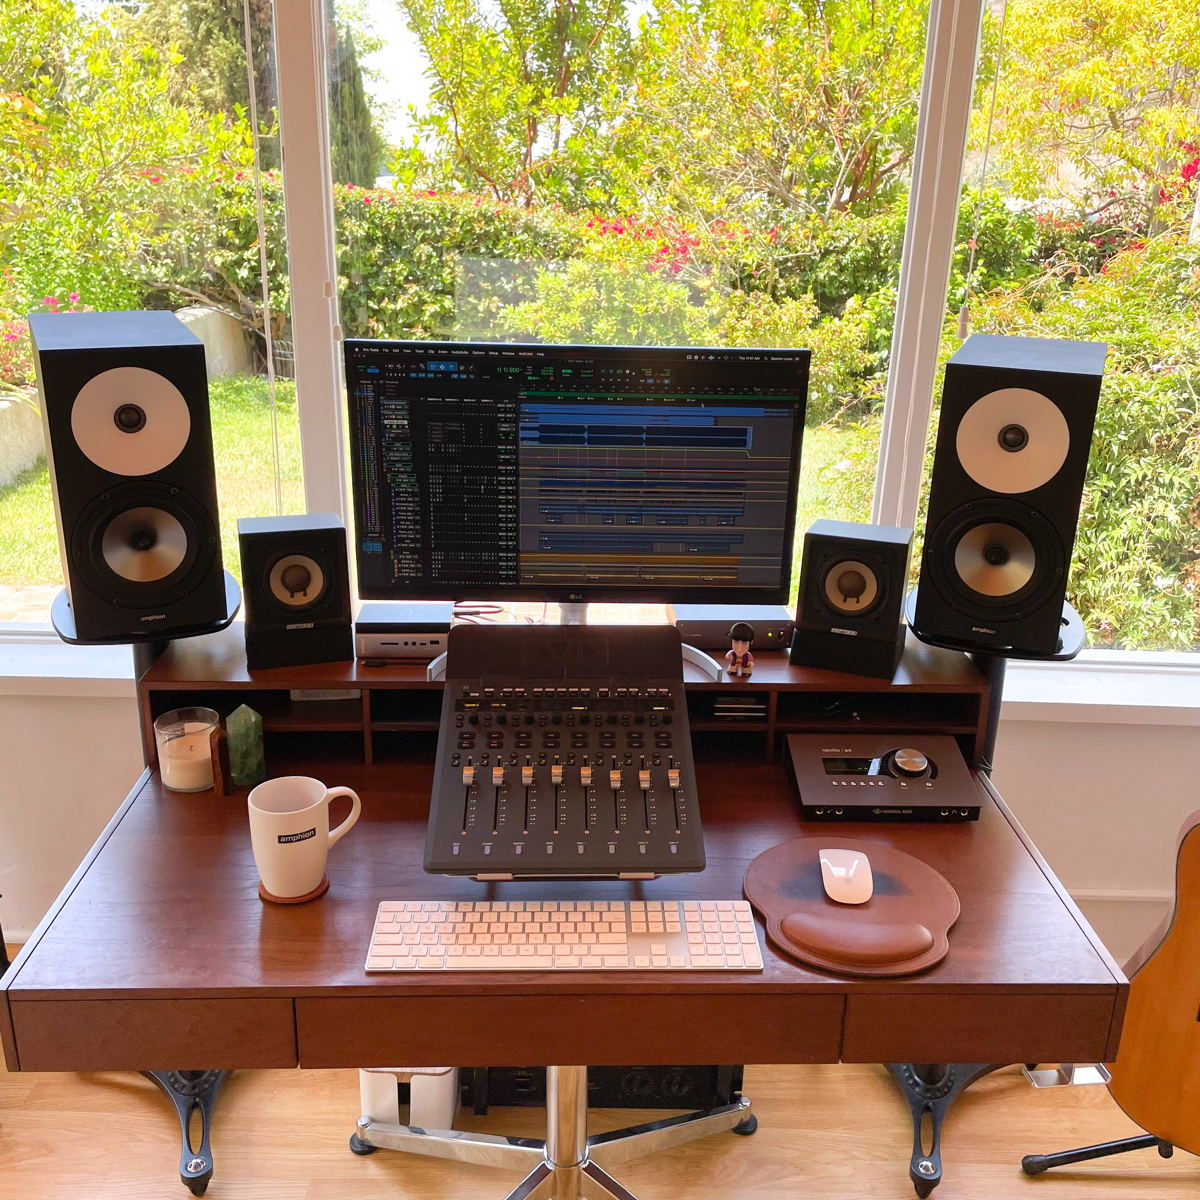 Lewis's home setup consists of a MacMini with an Avid S1 Control Surface, Apollo interfaces, and a variety of favored plugins in addition to his Amphion One18s and Amp700.